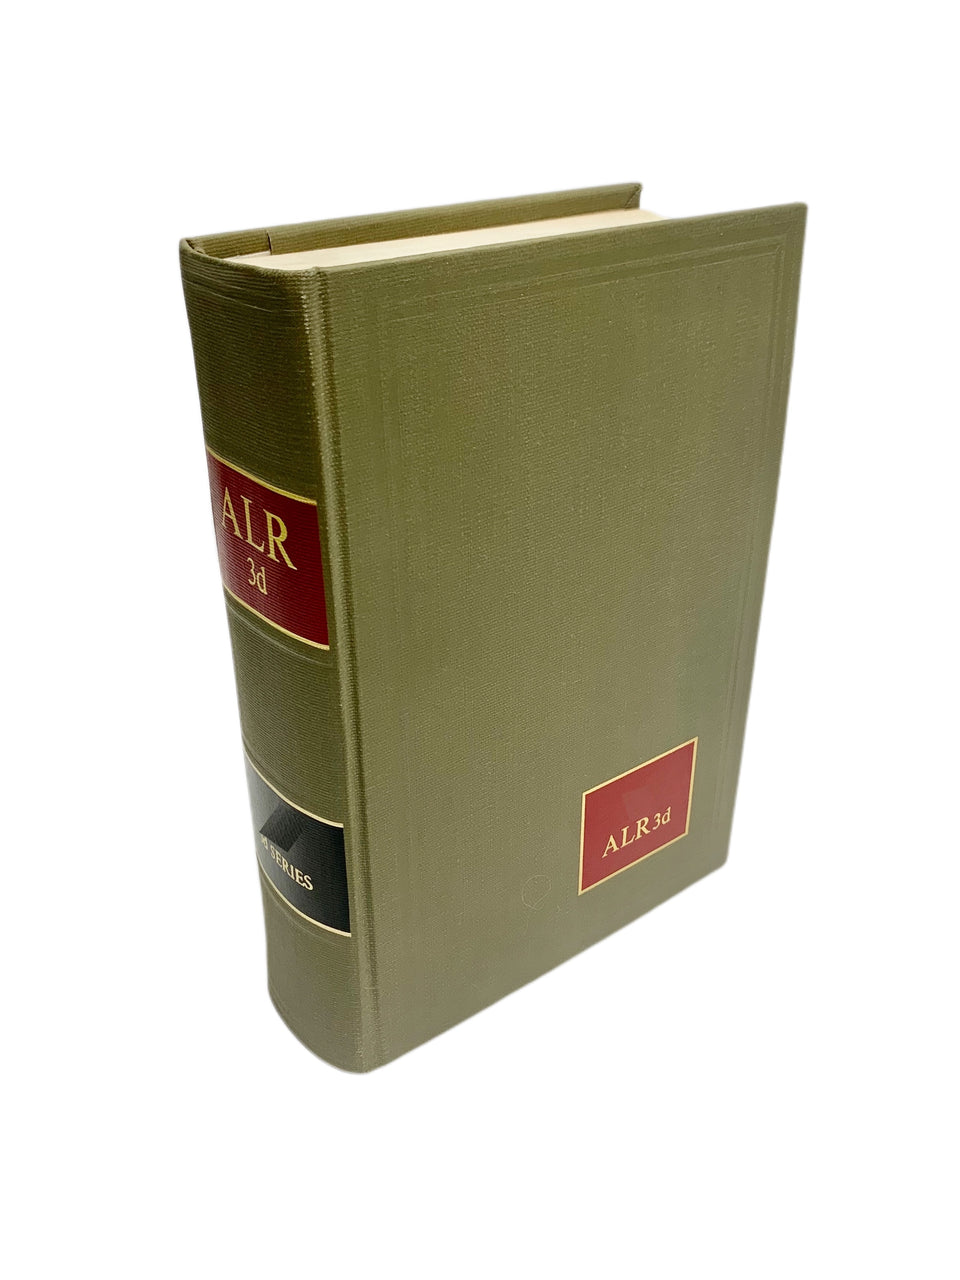 American Law Reports ALR 3d Series Law Book Volume 100 Cases & Annotations 1980